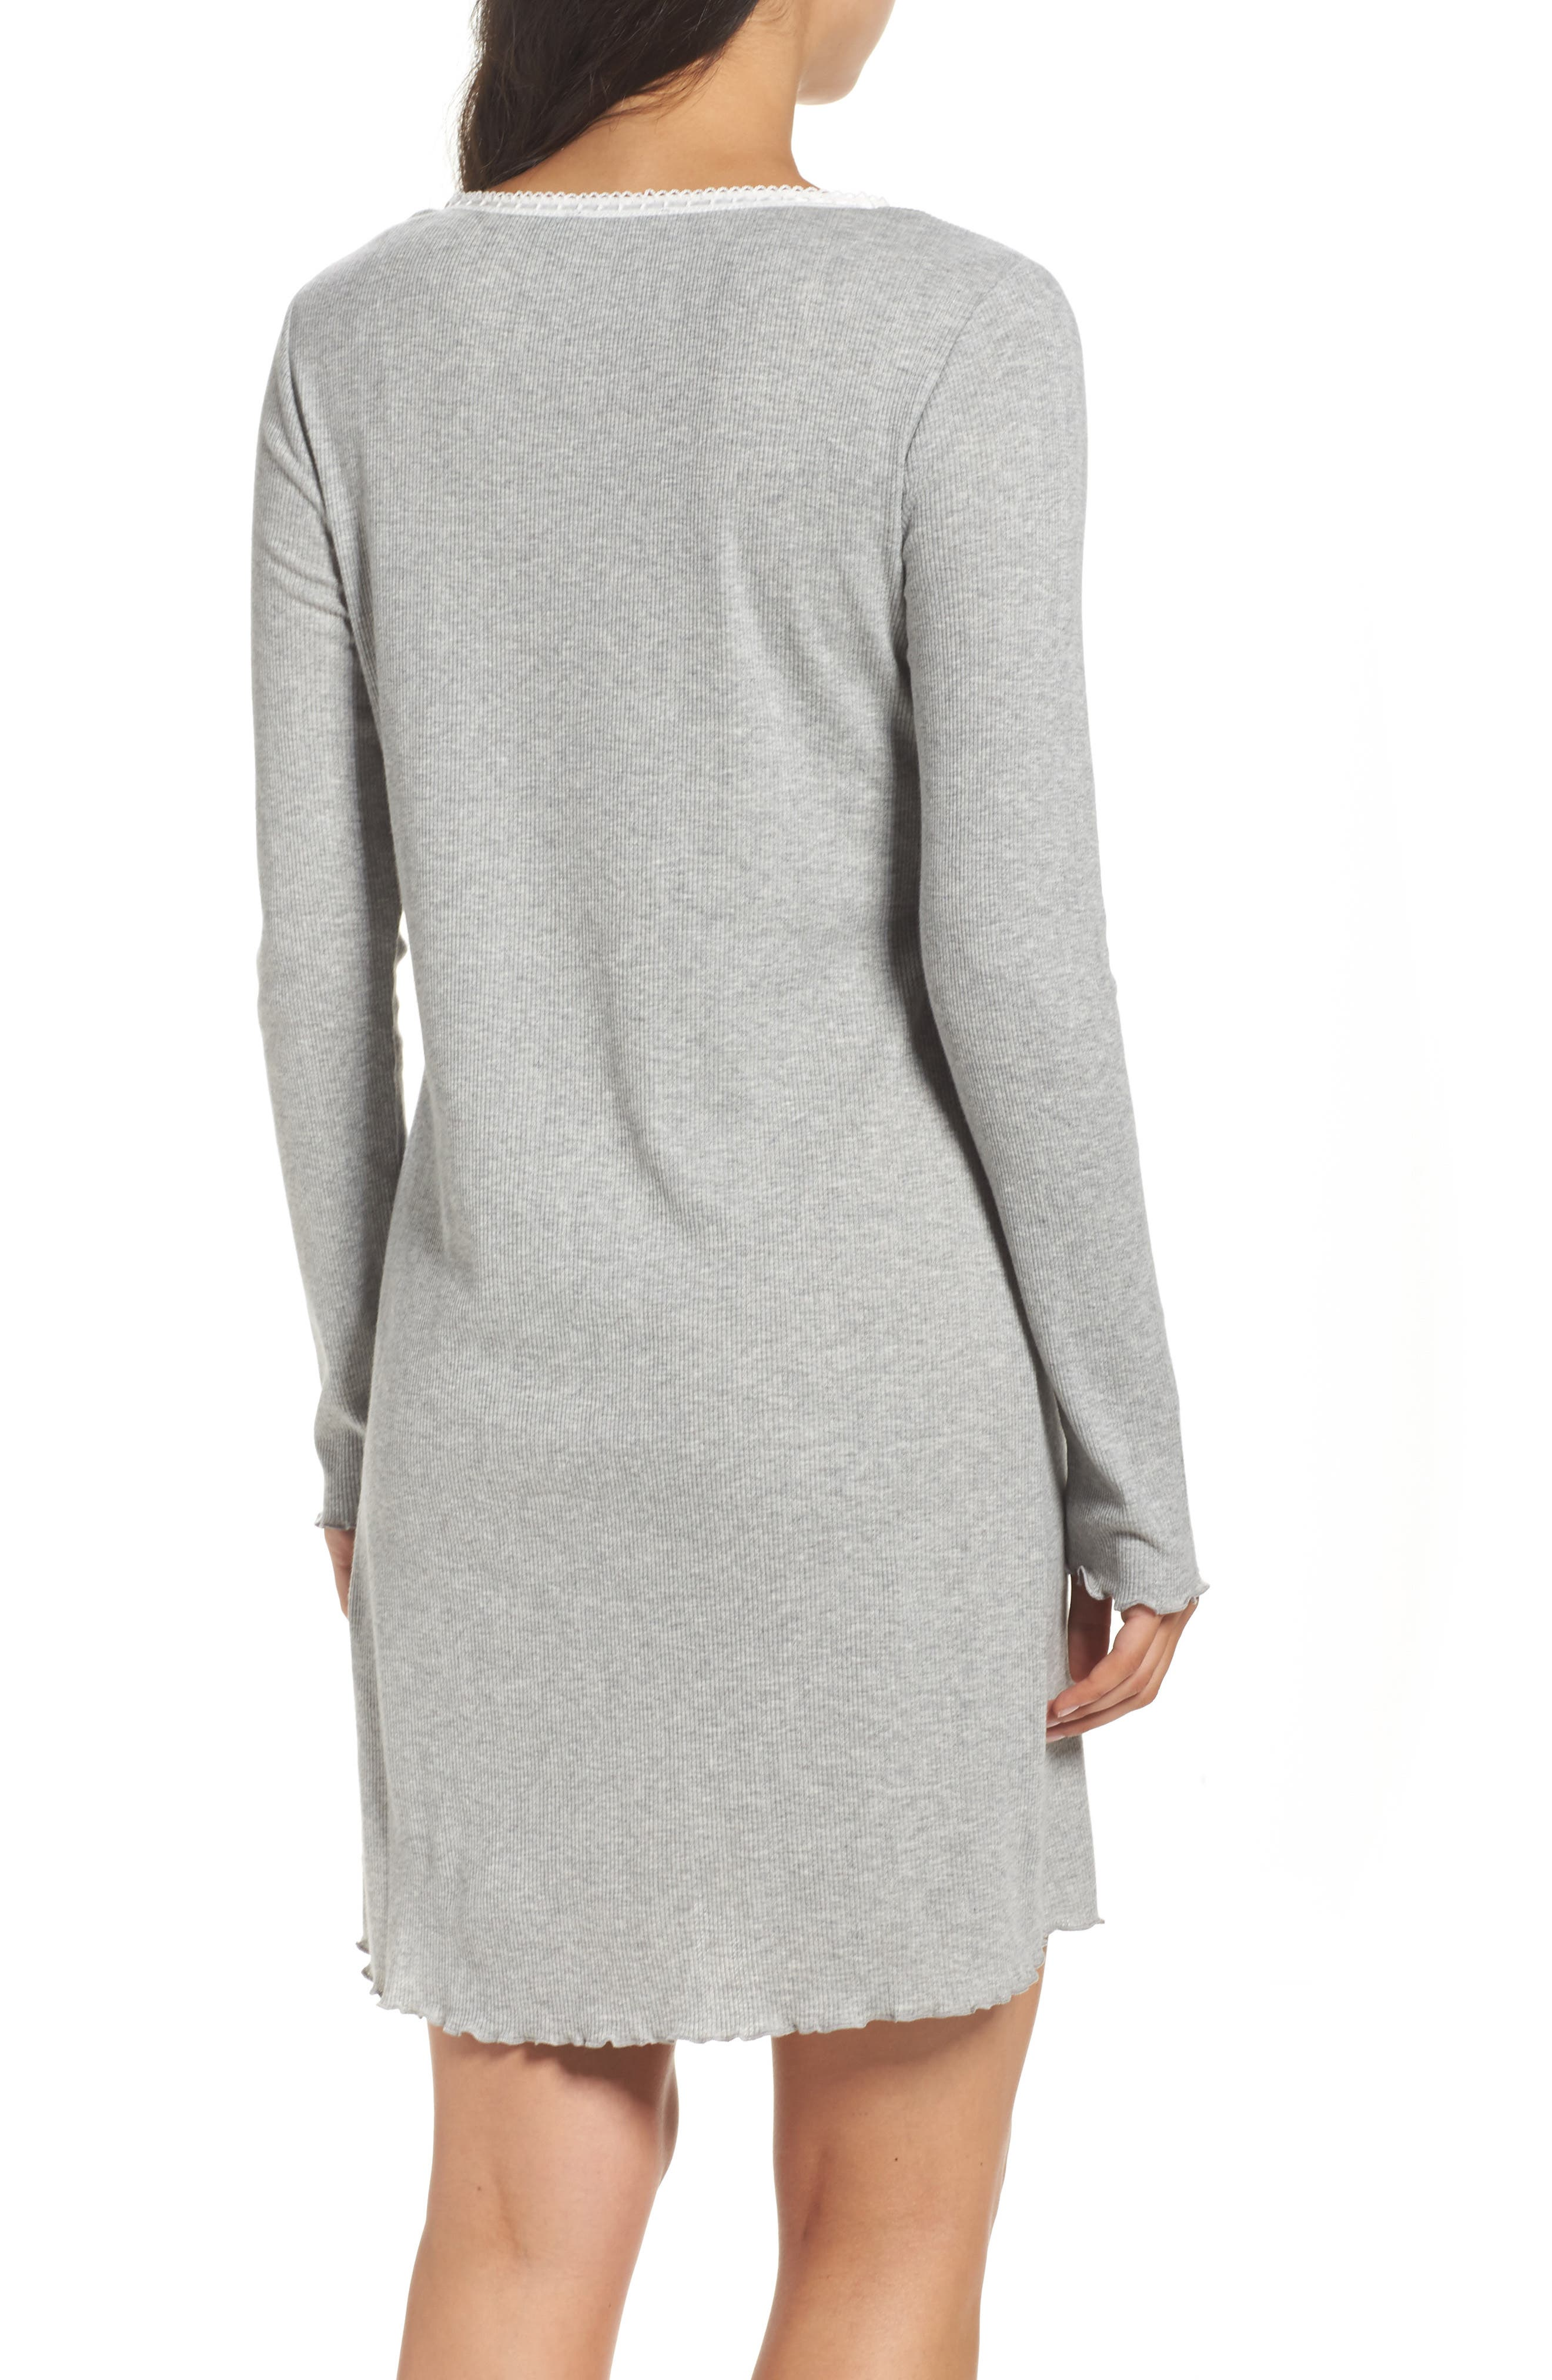 Lace Neck Sleep Shirt,                             Alternate thumbnail 2, color,                             Grey Heather